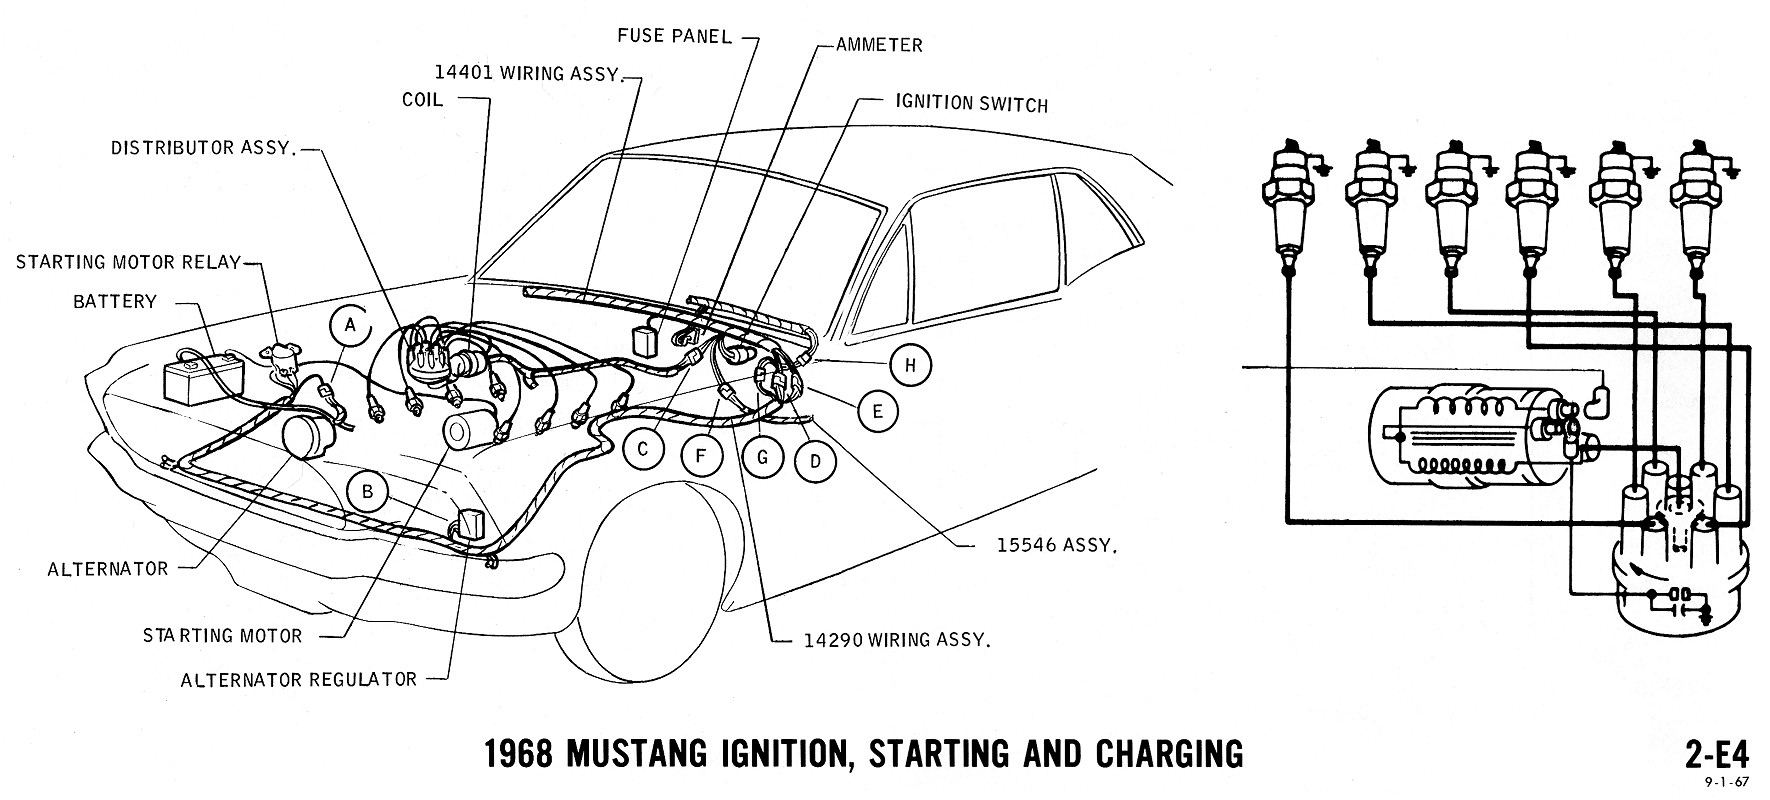 hight resolution of 1968 mustang wiring diagram ignition starting charging 2